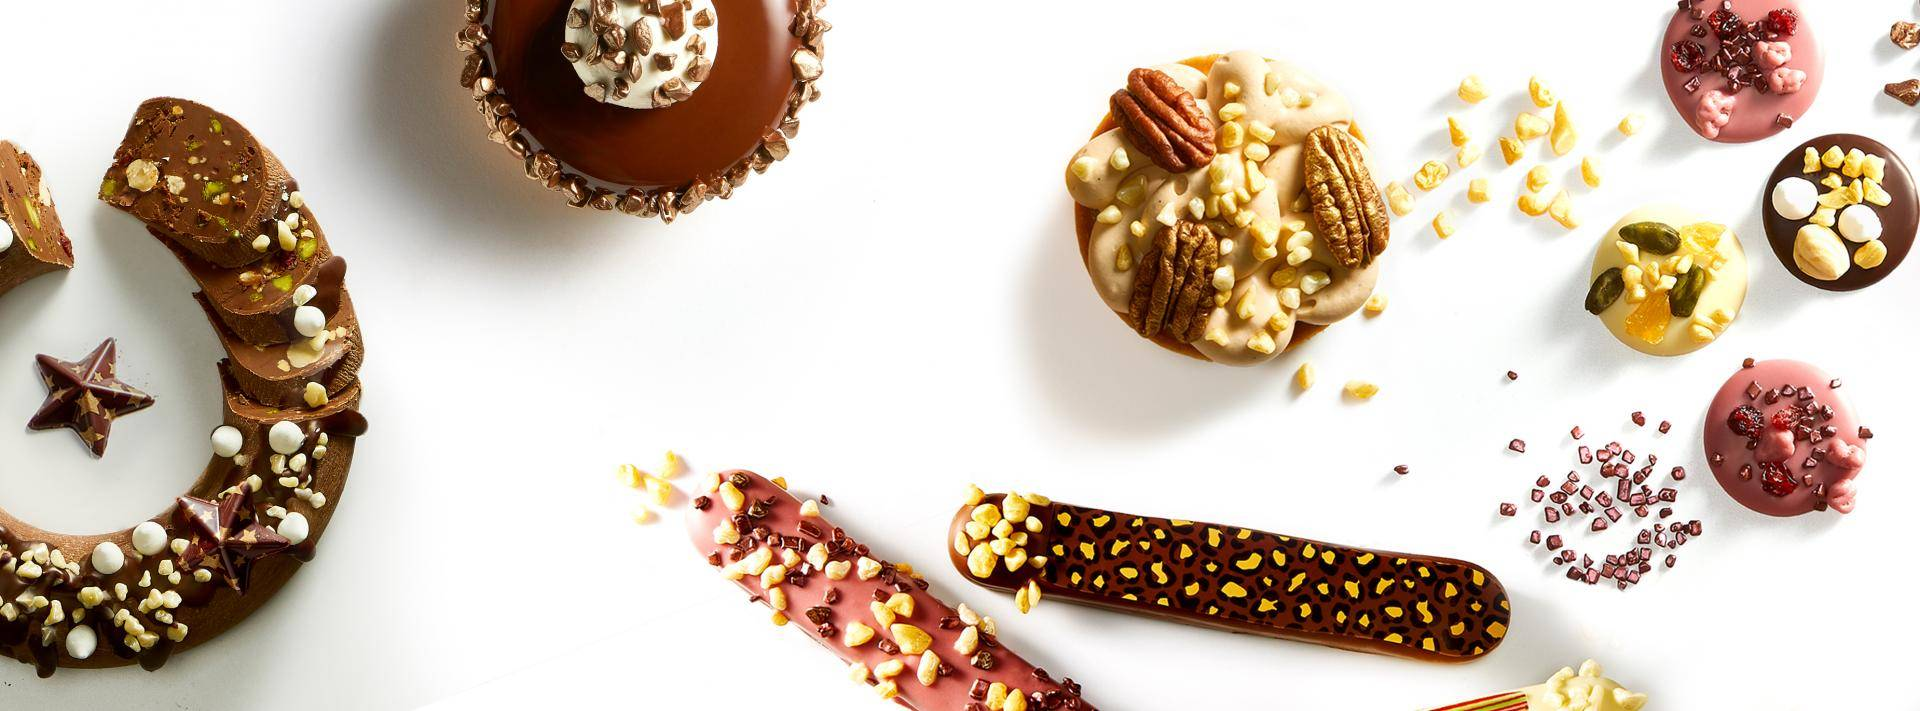 Glam-up the Festive Season with NEW Metallic Chocolate Sprinkles